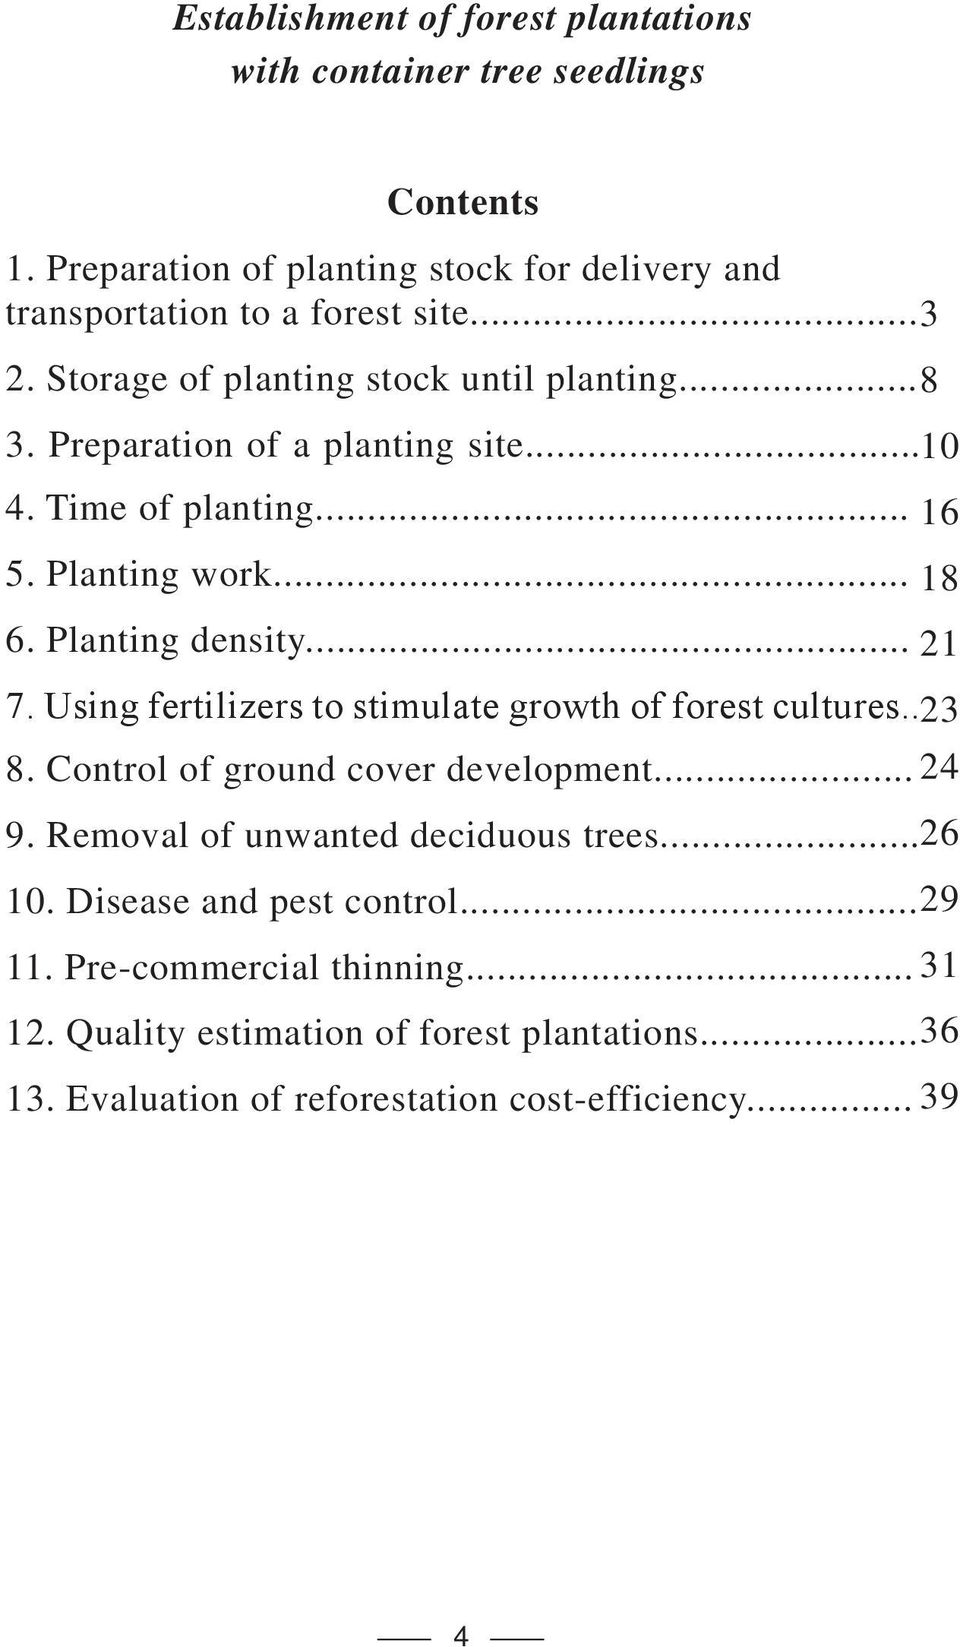 Using fertilizers to stimulate growth of forest cultures.. 23 8. Control of ground cover development... 24 9. Removal of unwanted deciduous trees... 26 10.